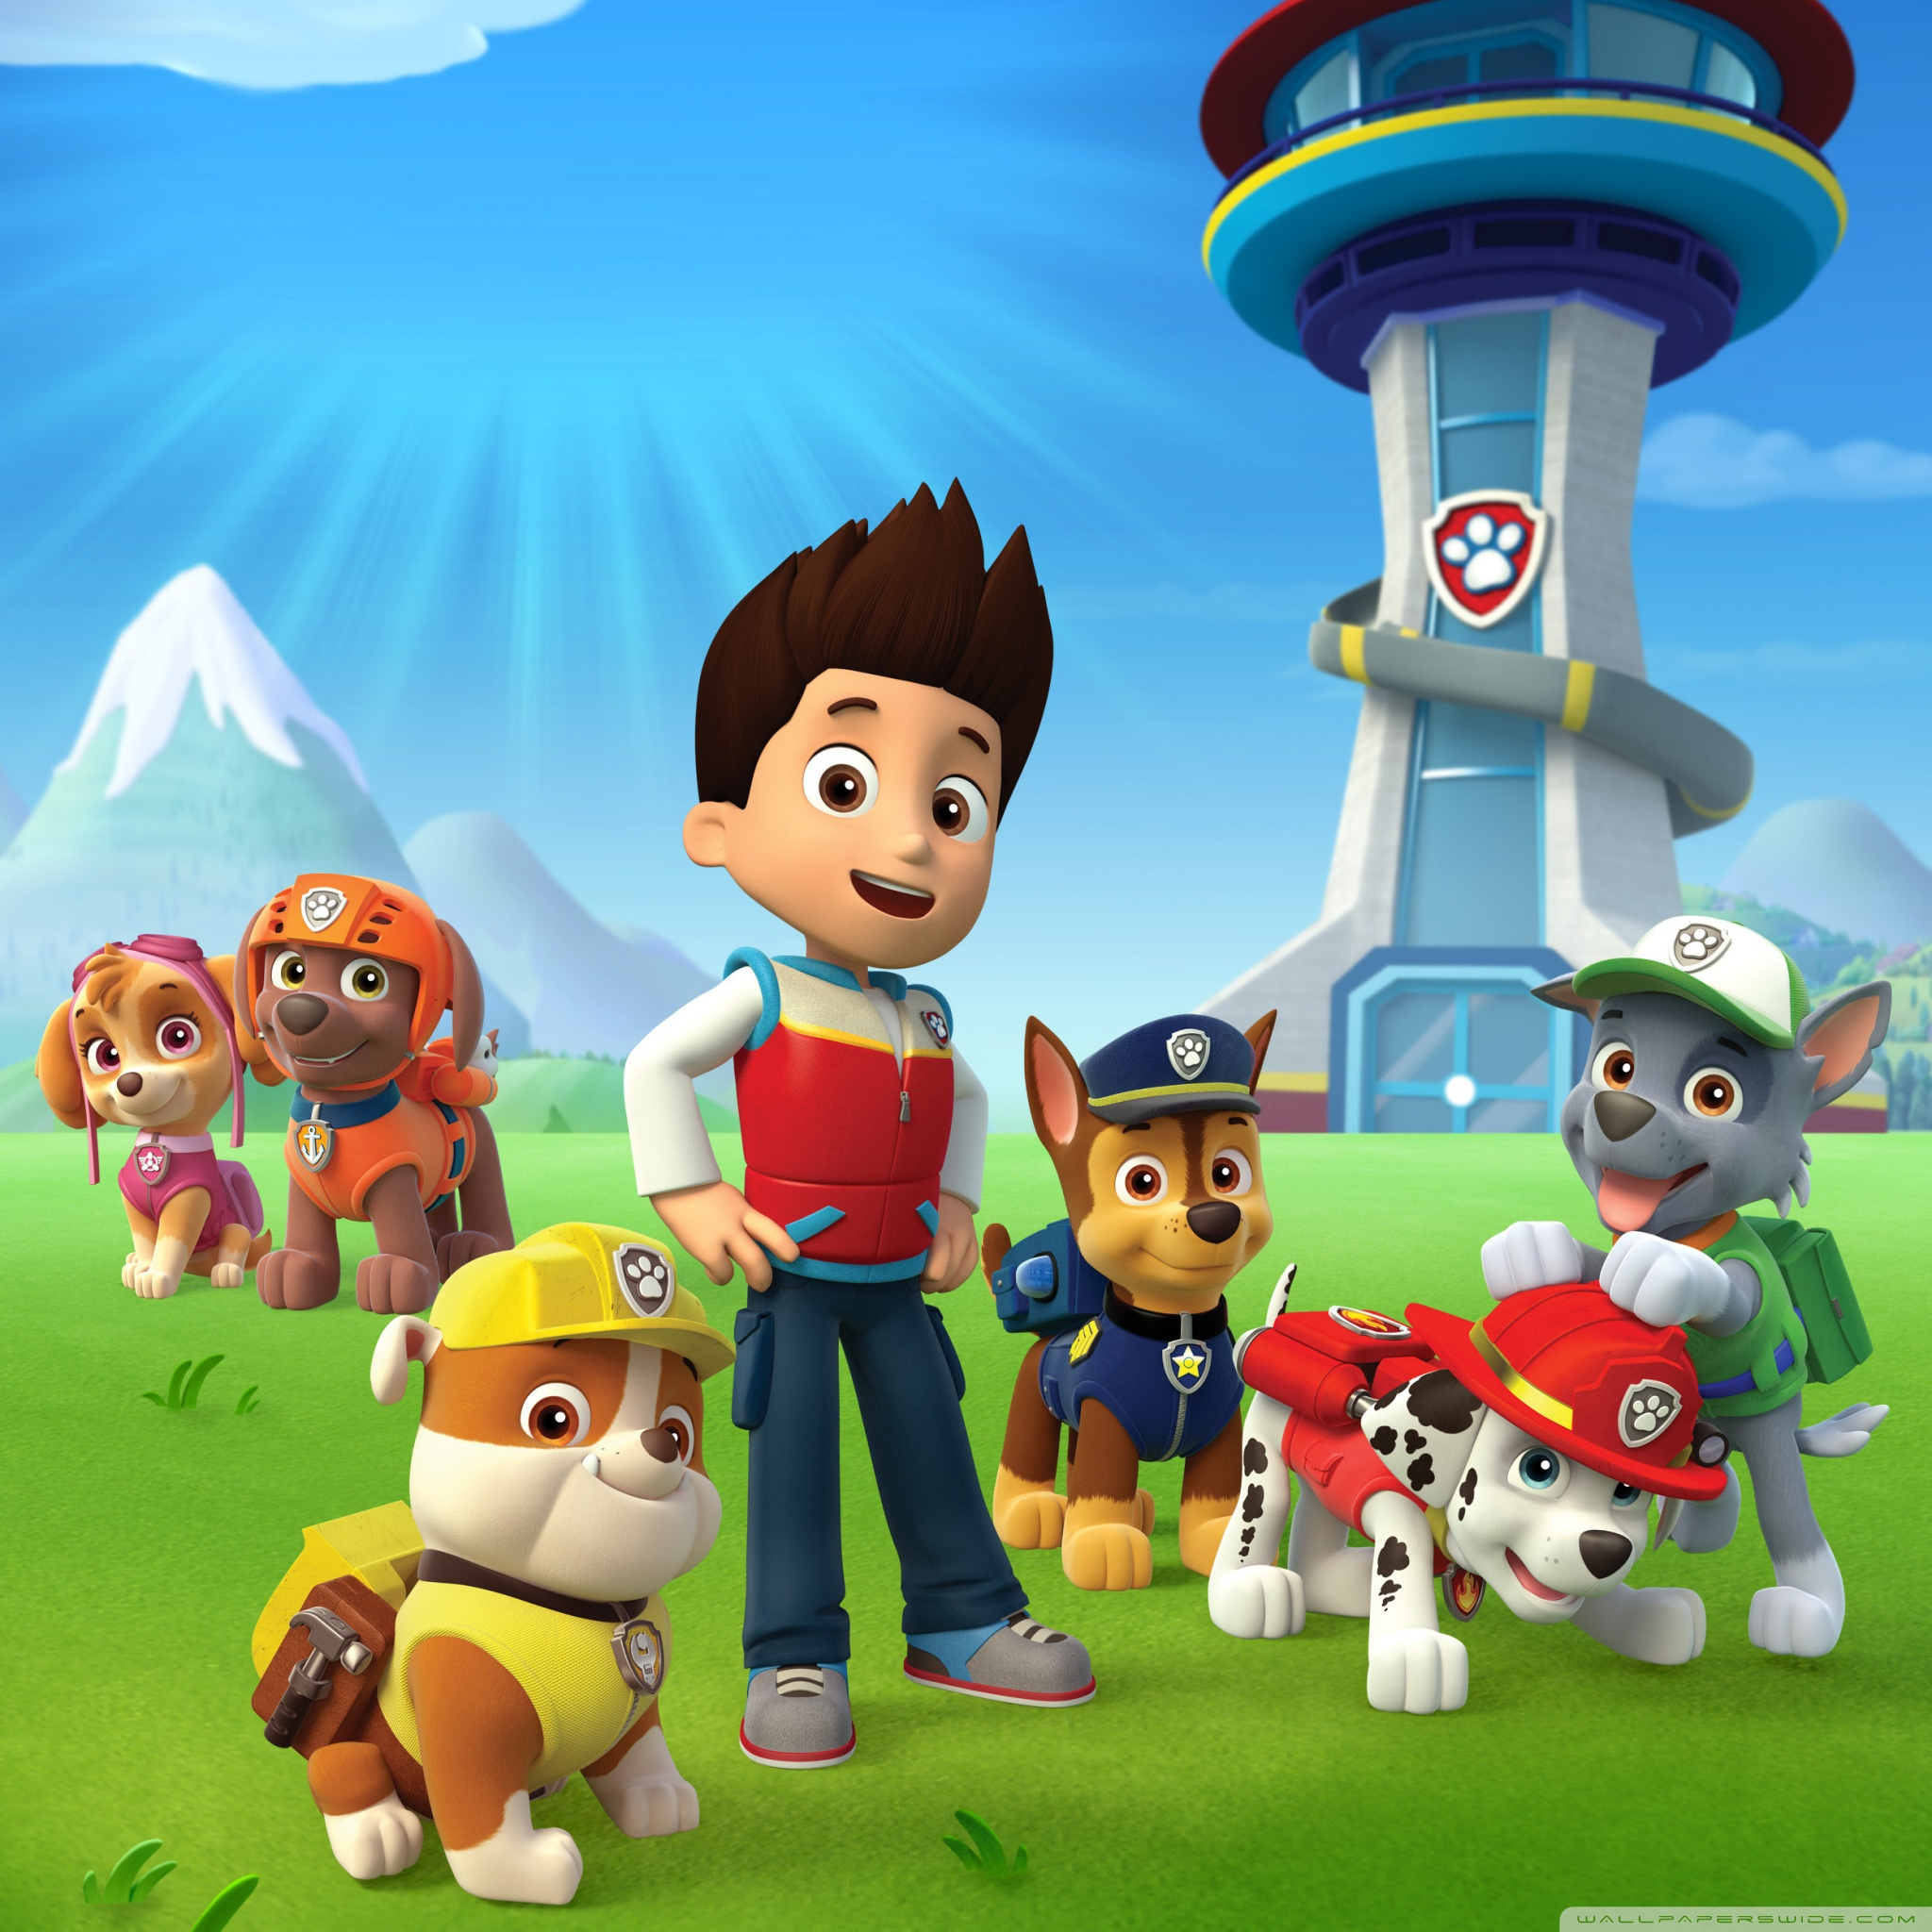 Paw patrol background clipart